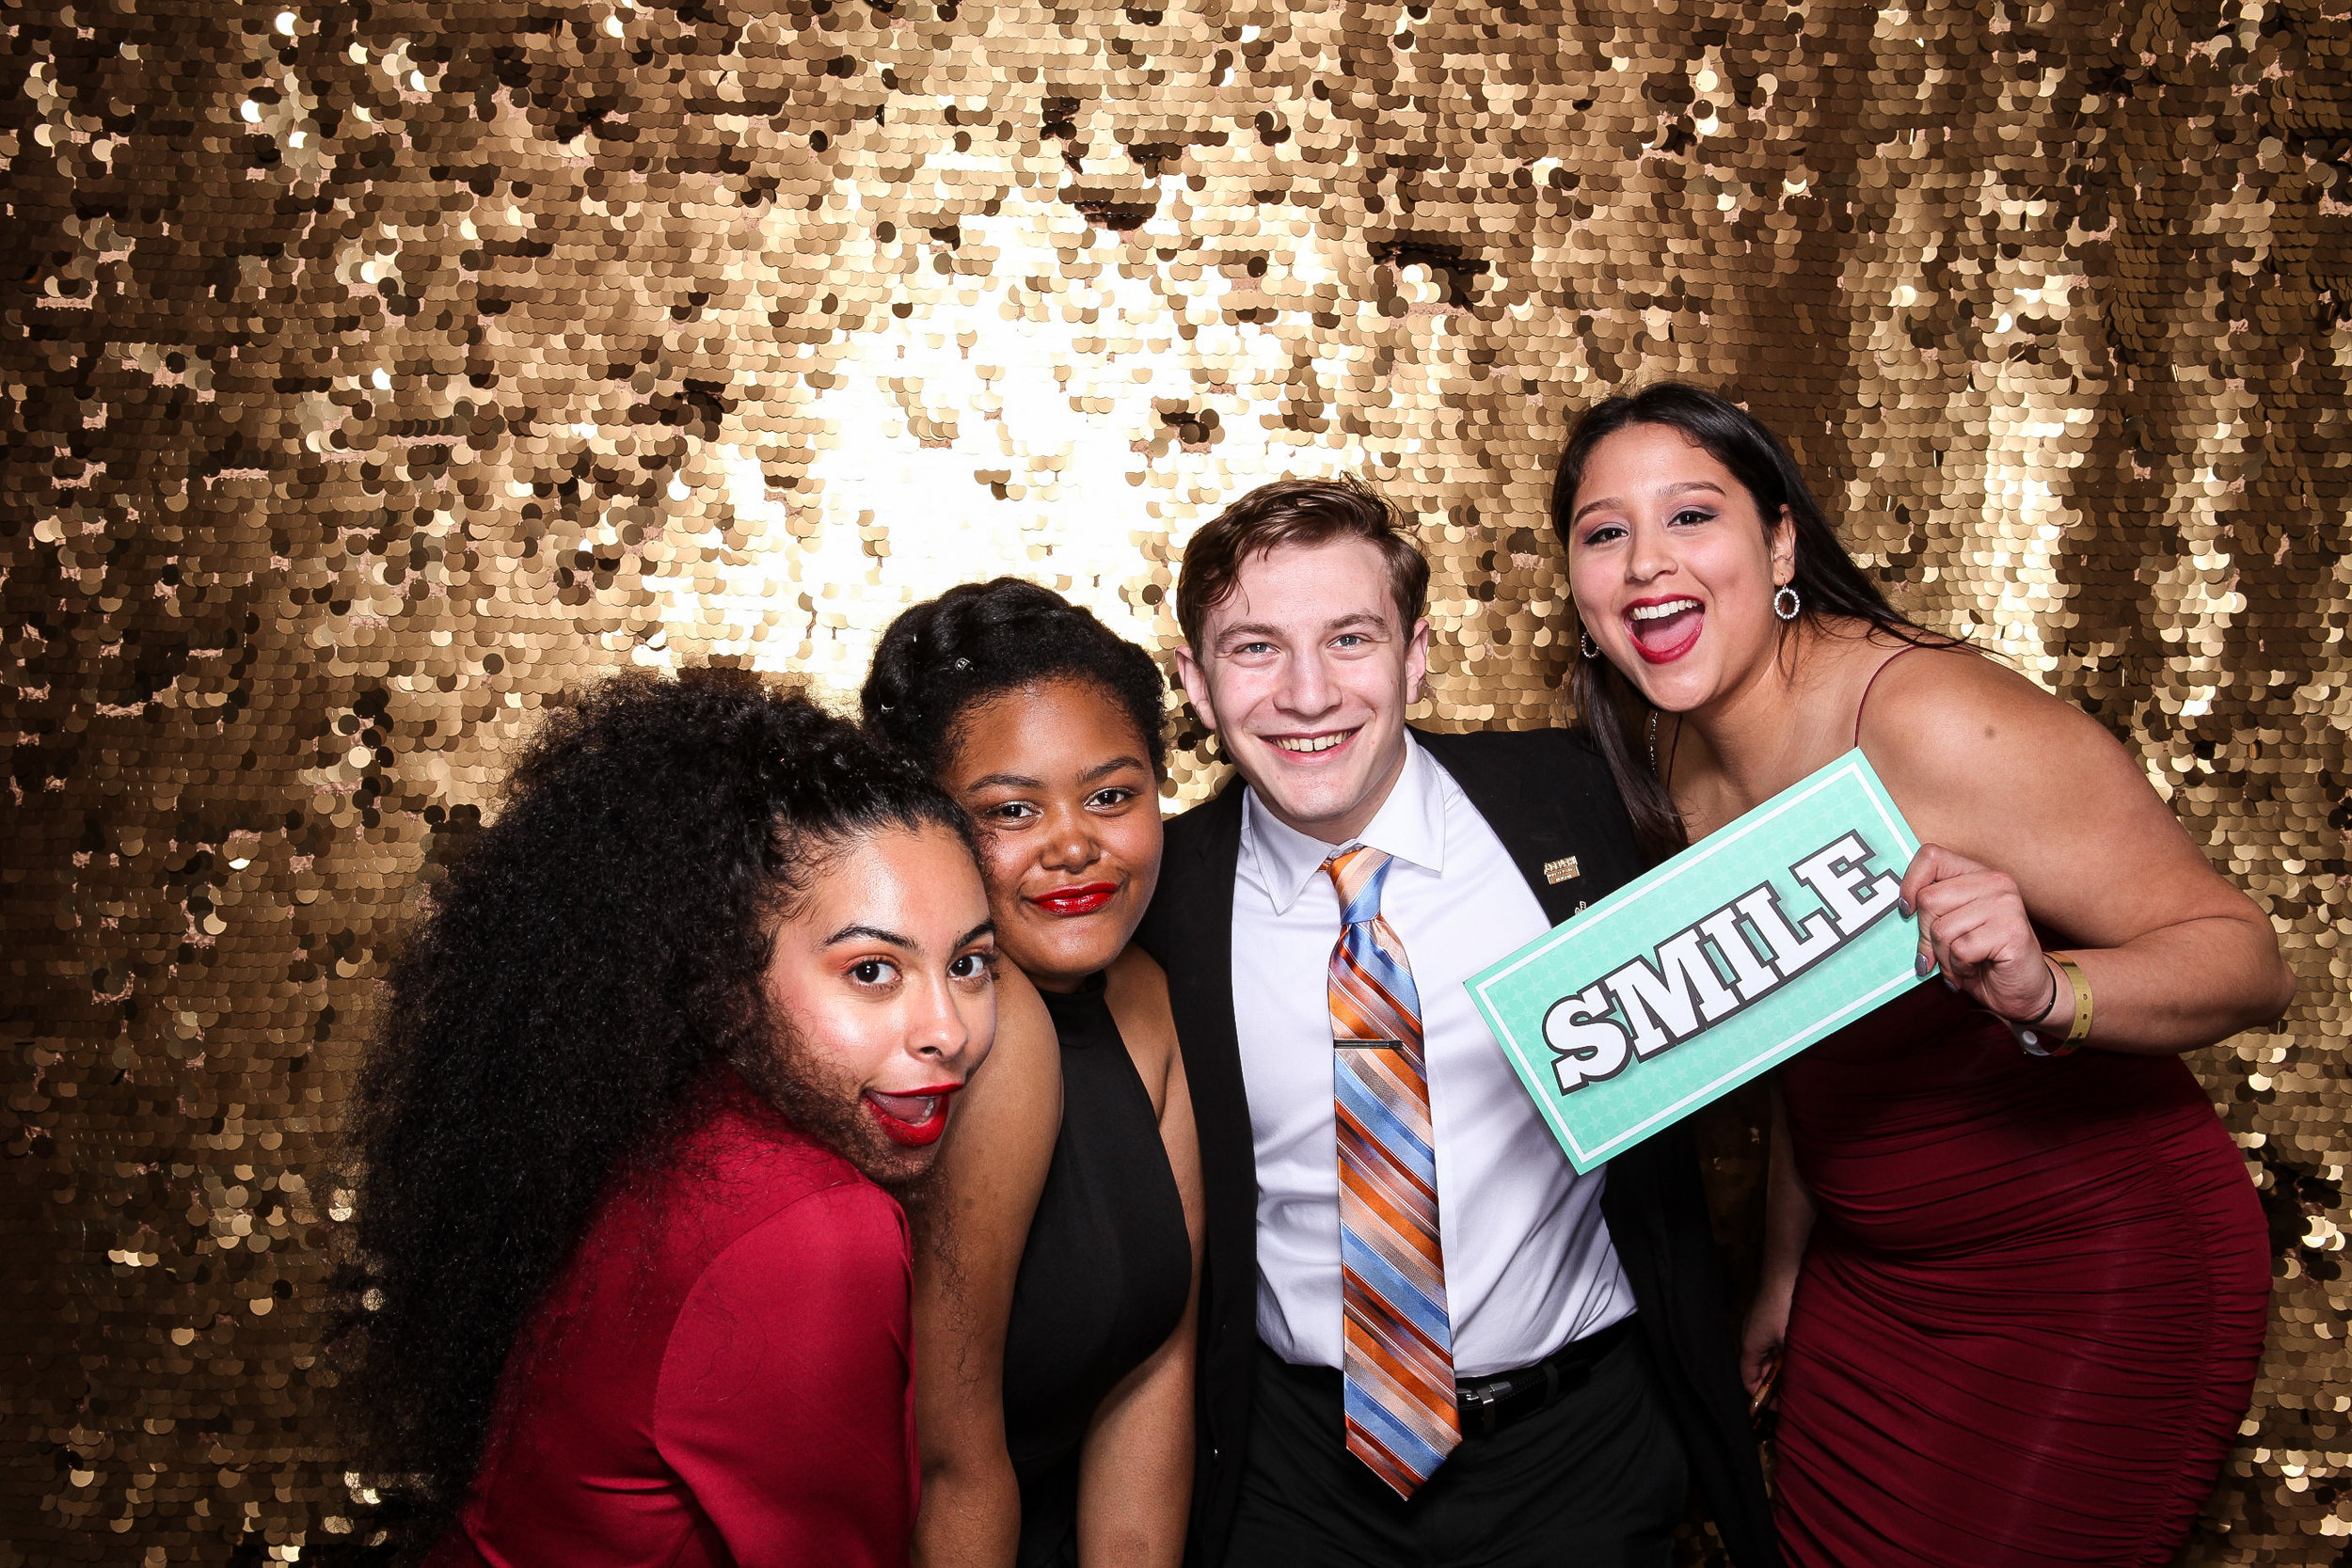 20190503_Adelphi_Senior_Formal-399.jpg